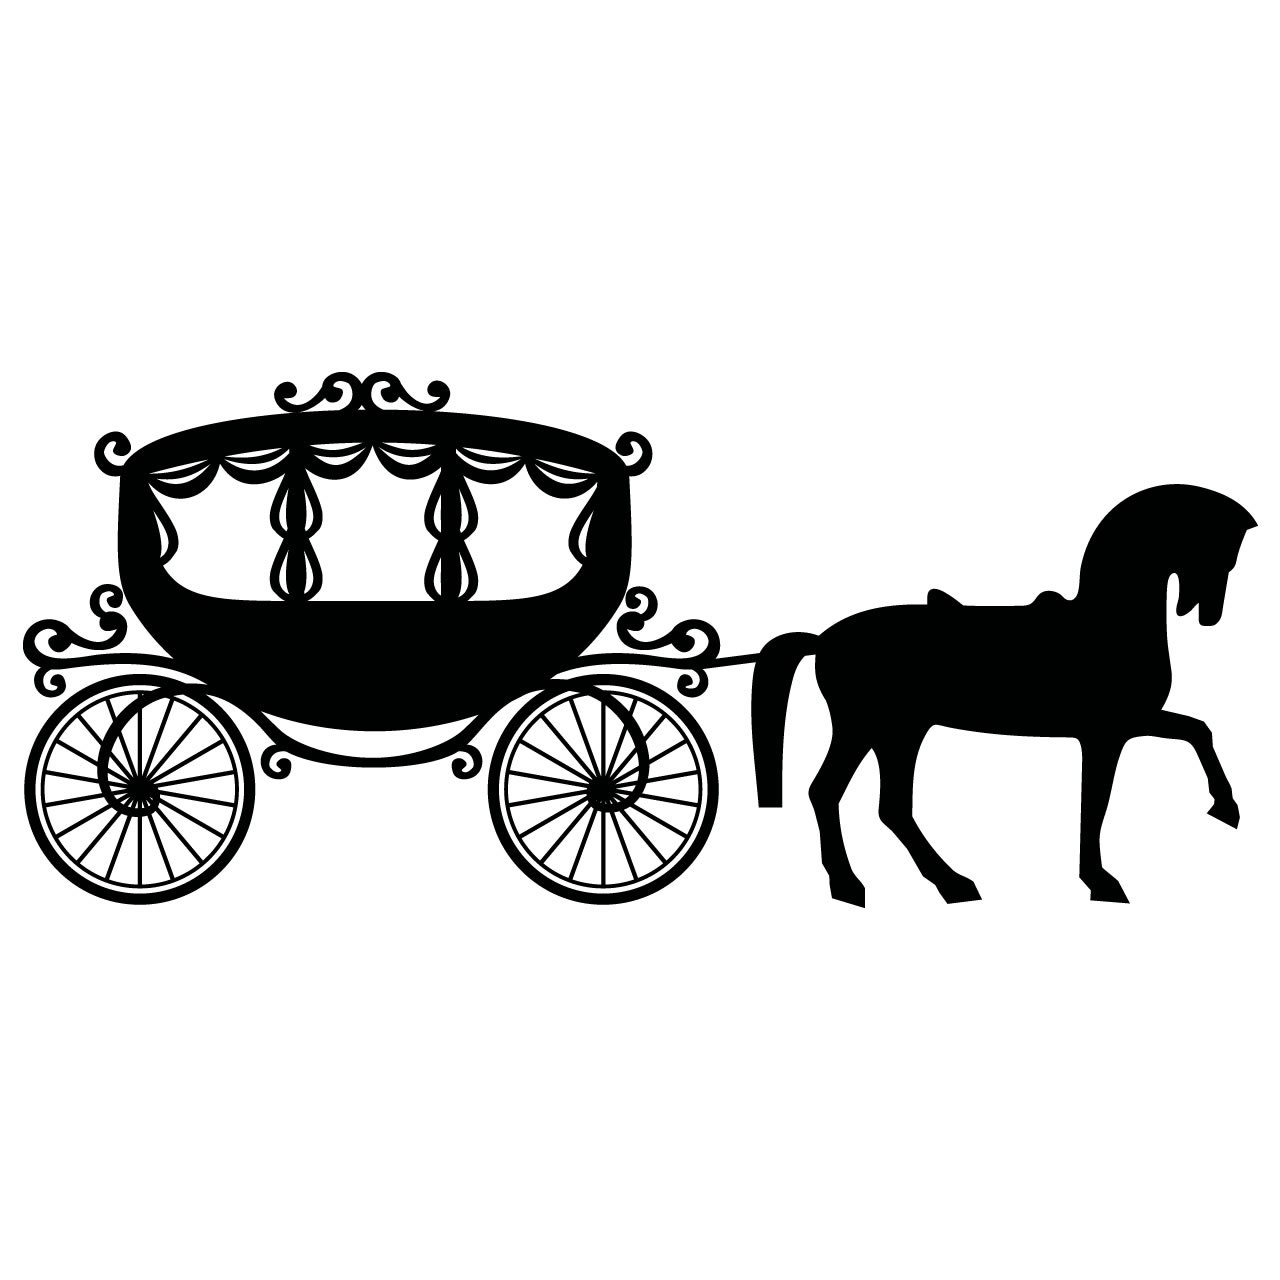 Cinderella horse and carriage clipart 1 » Clipart Portal.